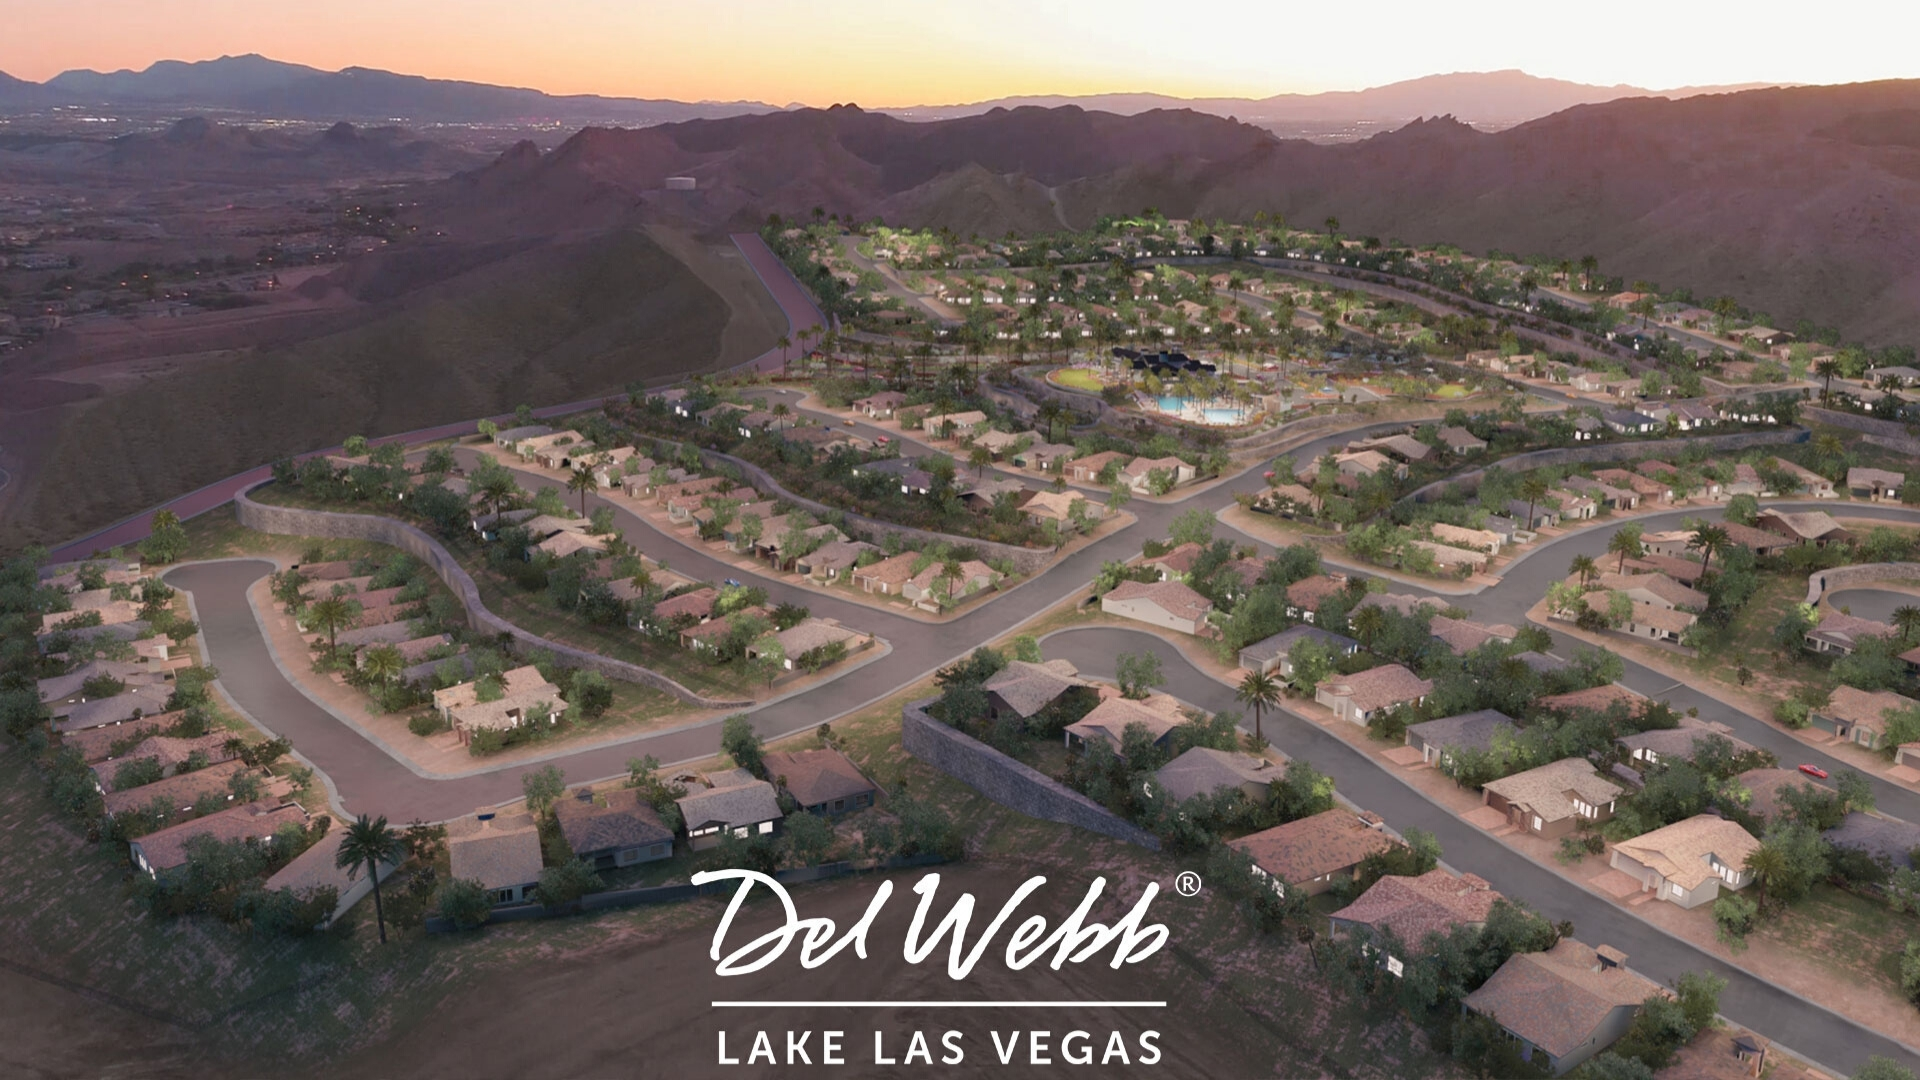 After More than a Decade, Del Webb Returns to Las Vegas with Two ...